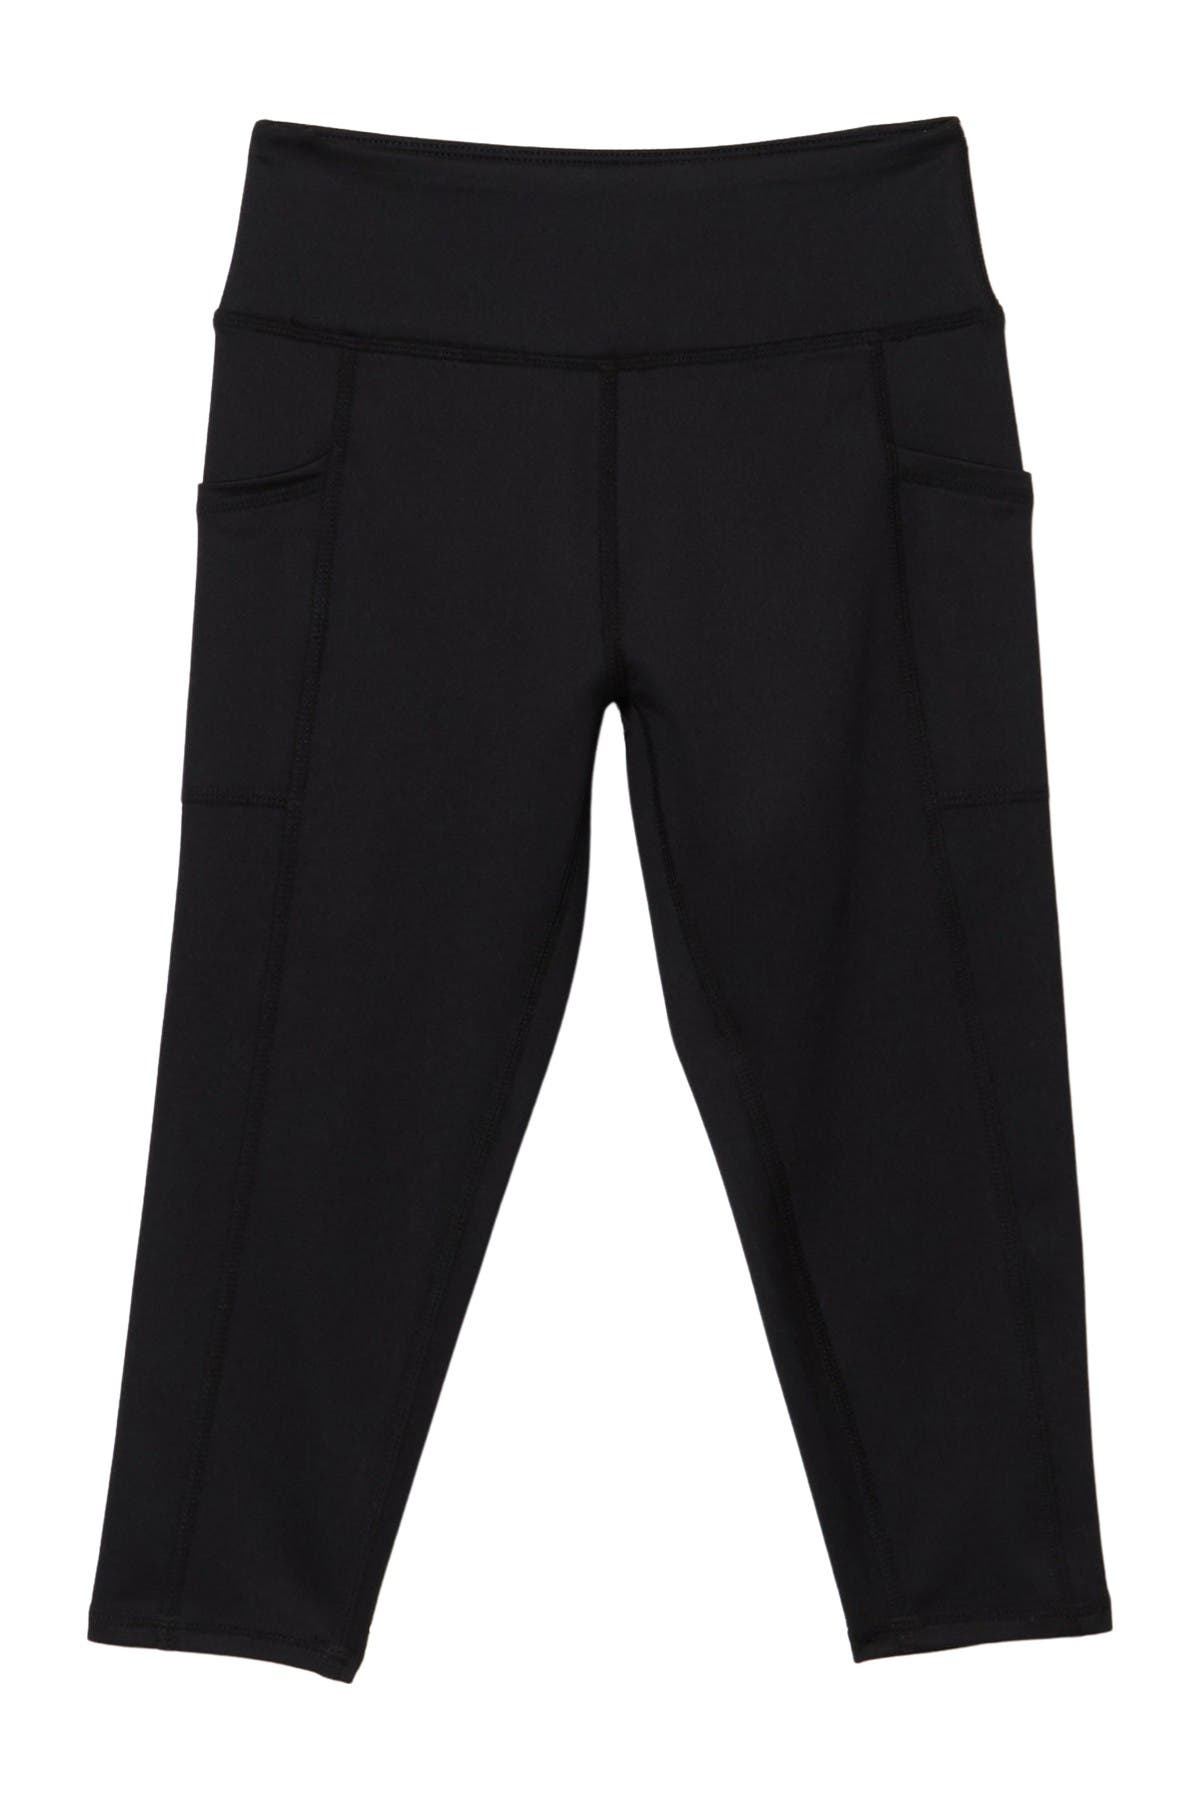 Image of Z by Zella Girl High Waisted Pocket Cropped Leggings